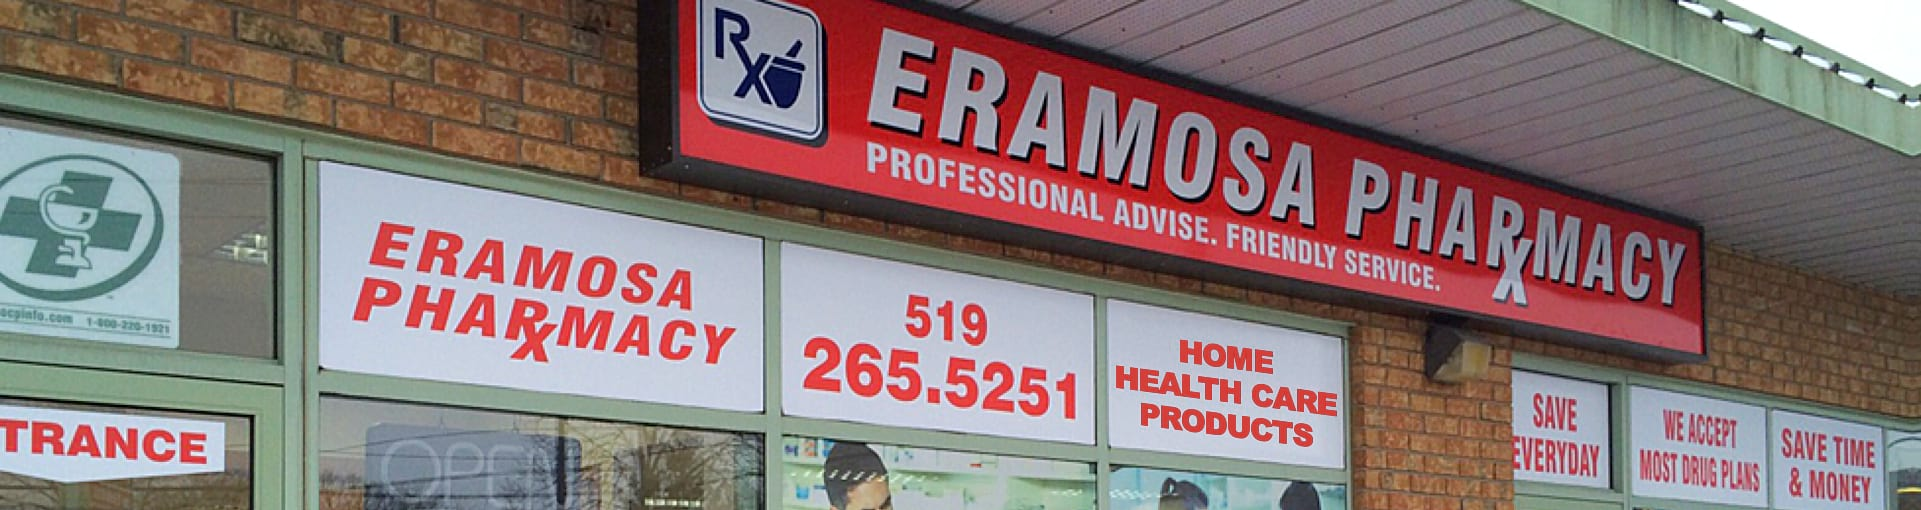 Eramosa Pharmacy